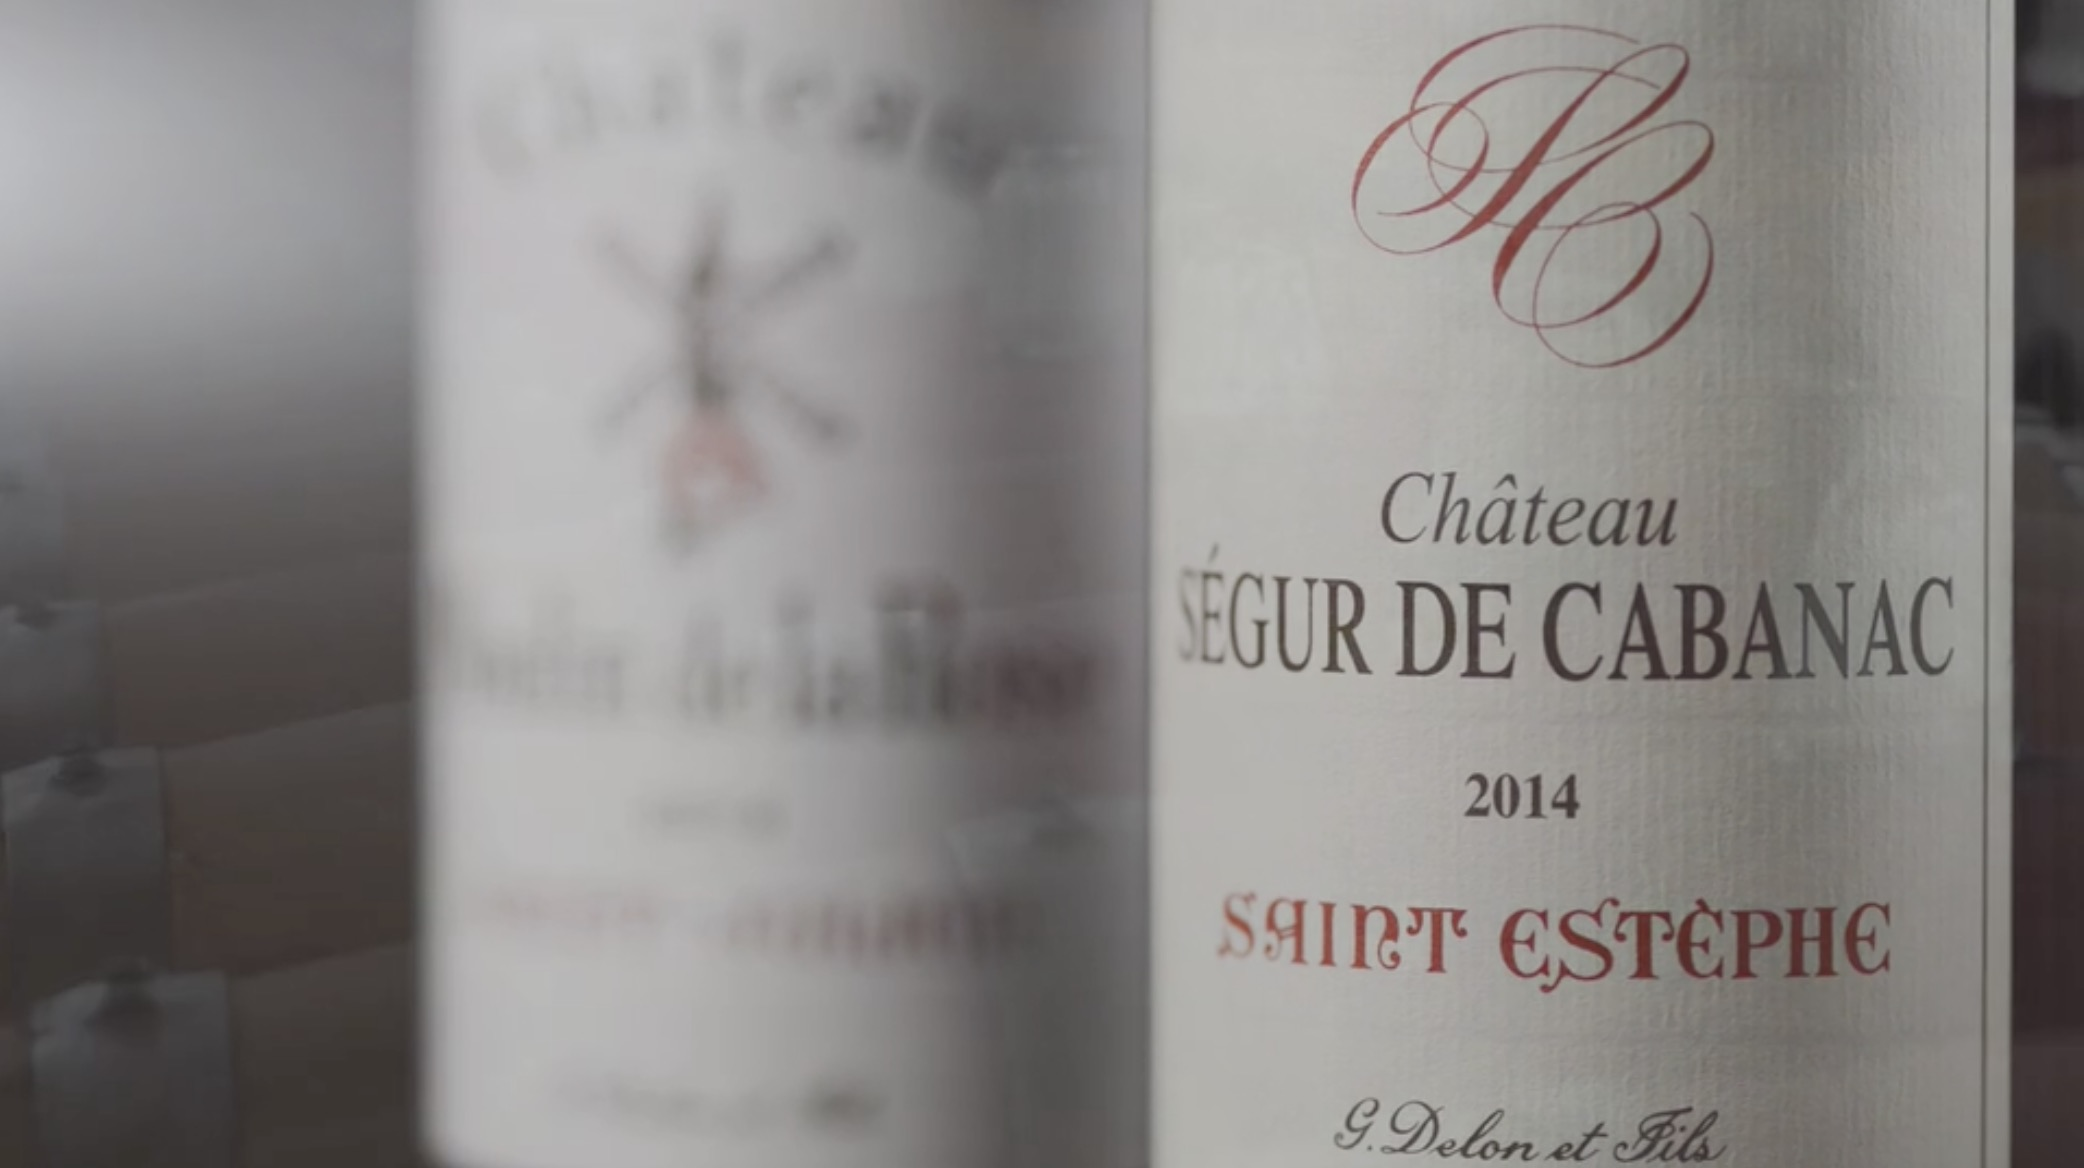 France_Chateau Segur de Cabanac_winery image.jpg